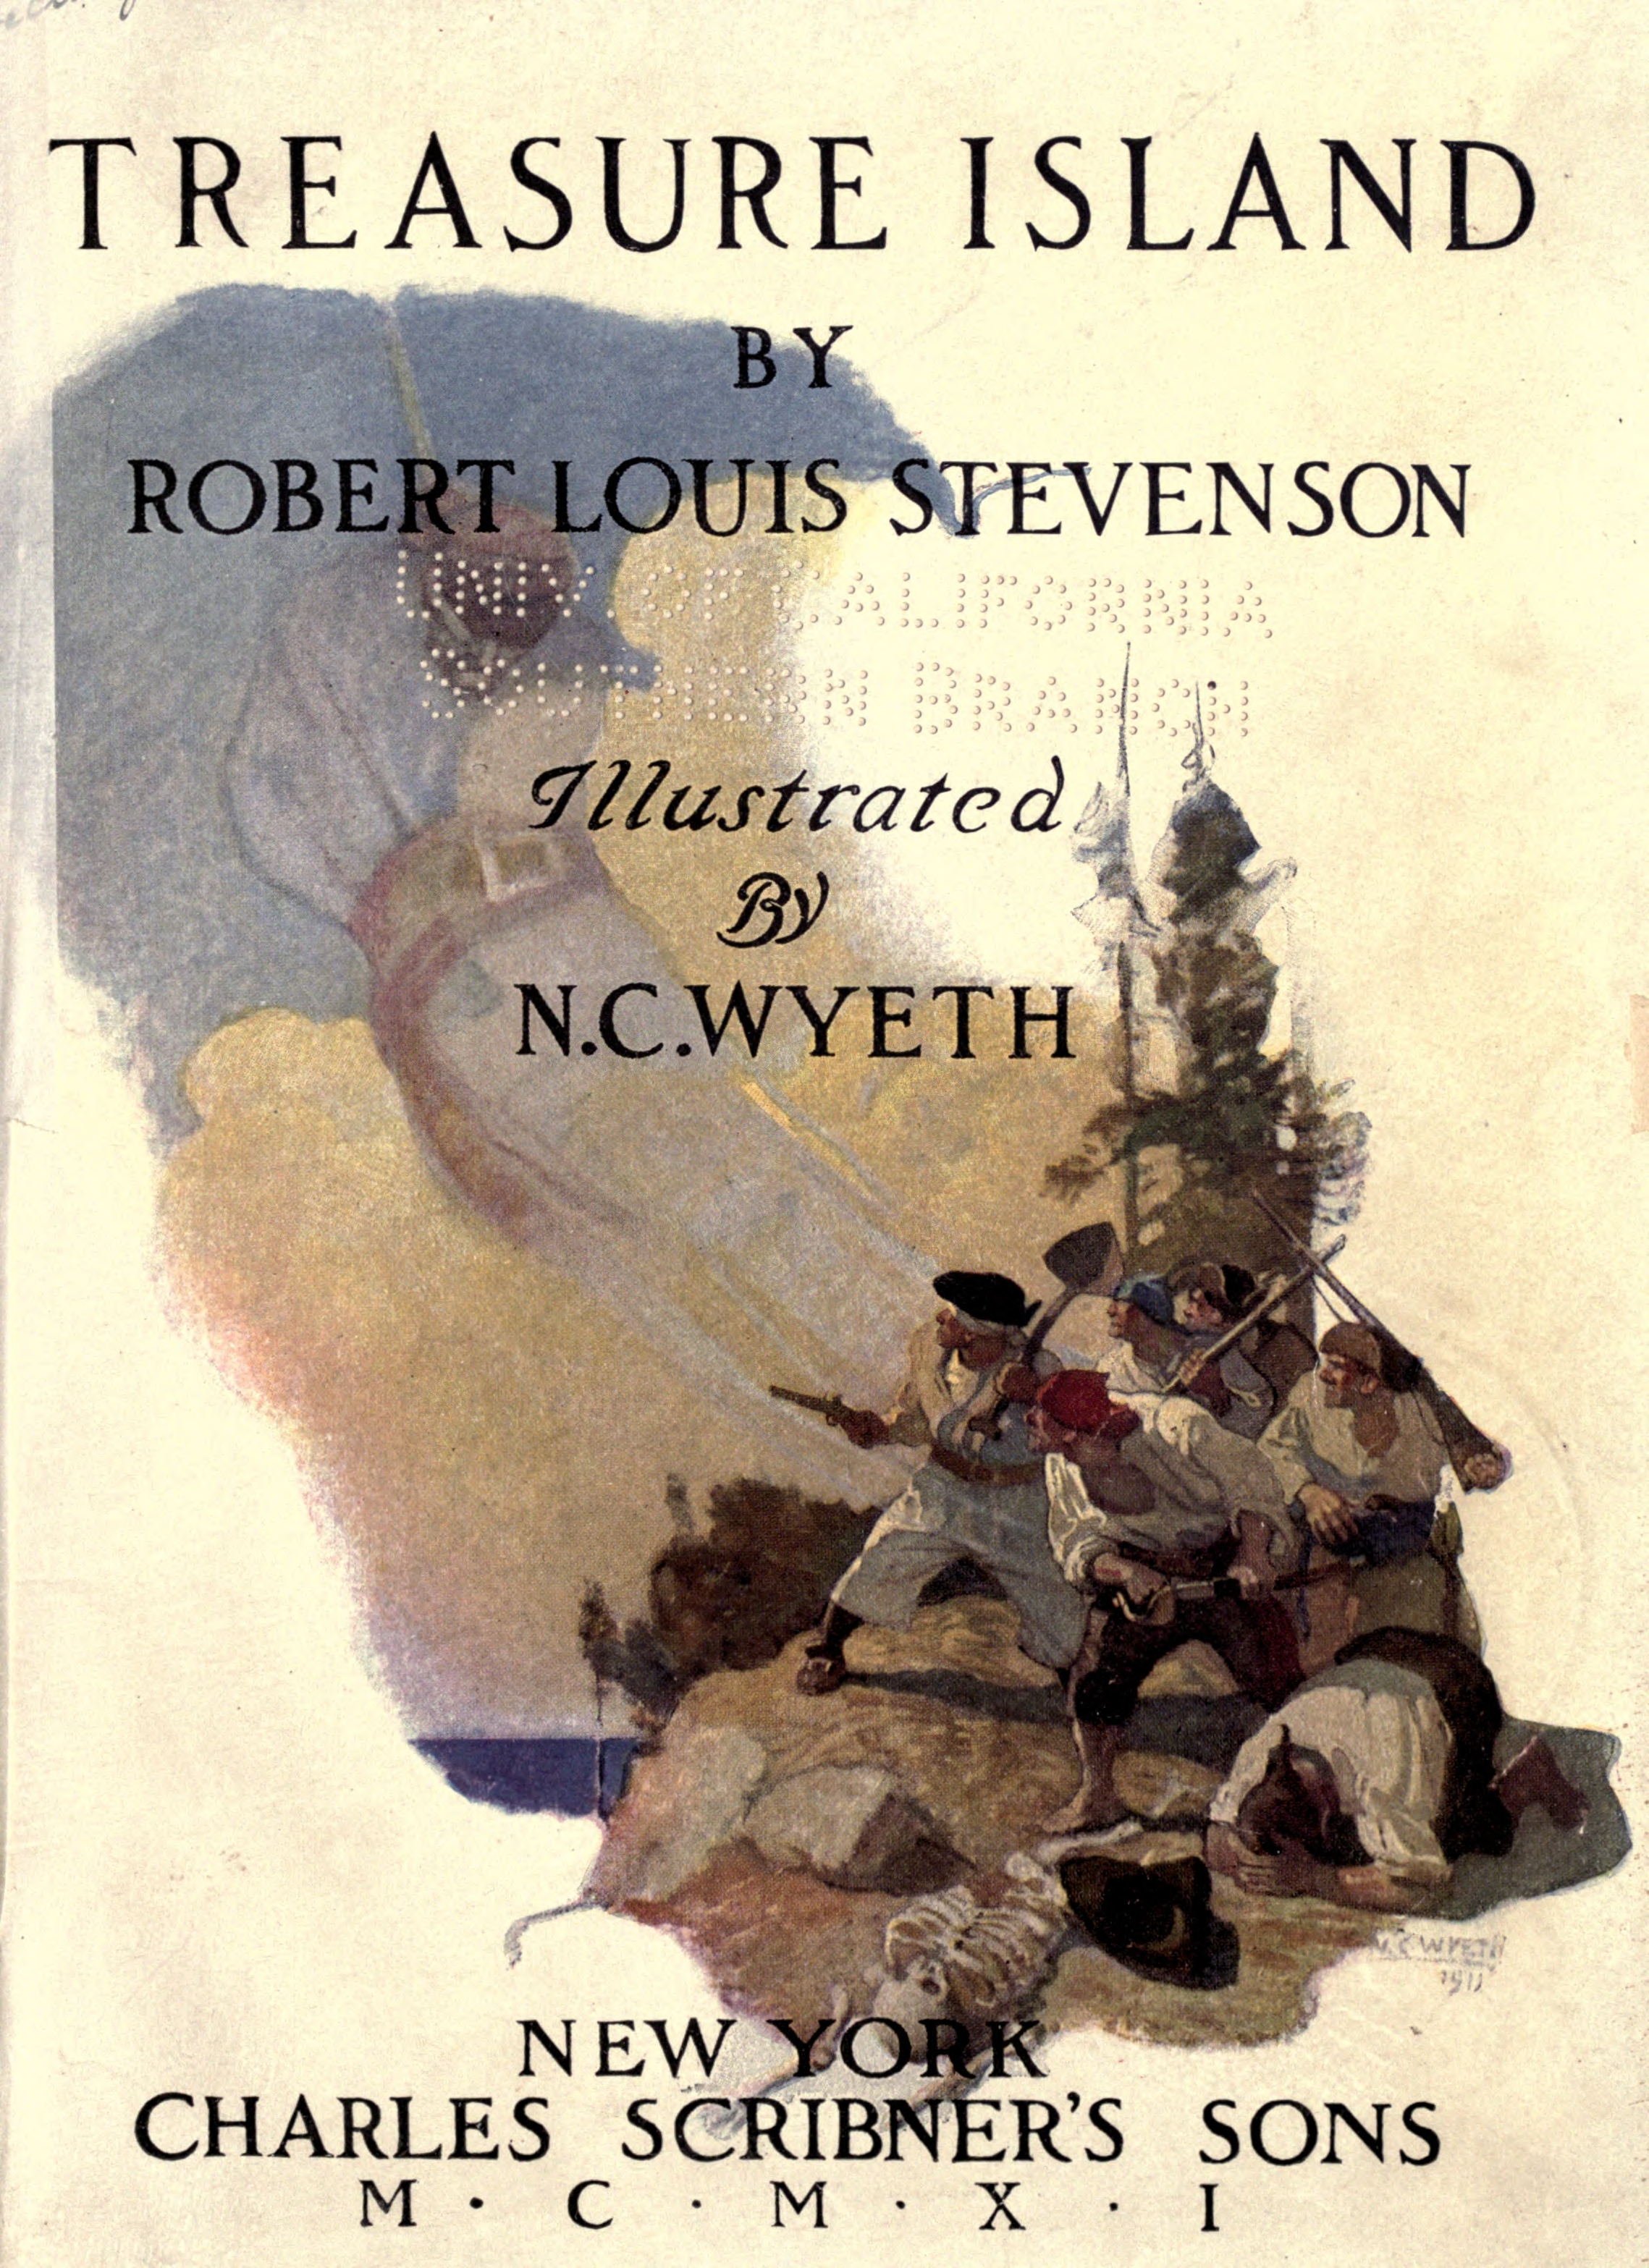 Title page of Treasure Island by Robert Louis Stevenson, Illustrated by N. C. Wyeth, published in New York by Charles Scribner's Sons, MCMXI. Painted illustration of a group of pirates and a skeleton on a cliff with the image of a ship in the clouds.